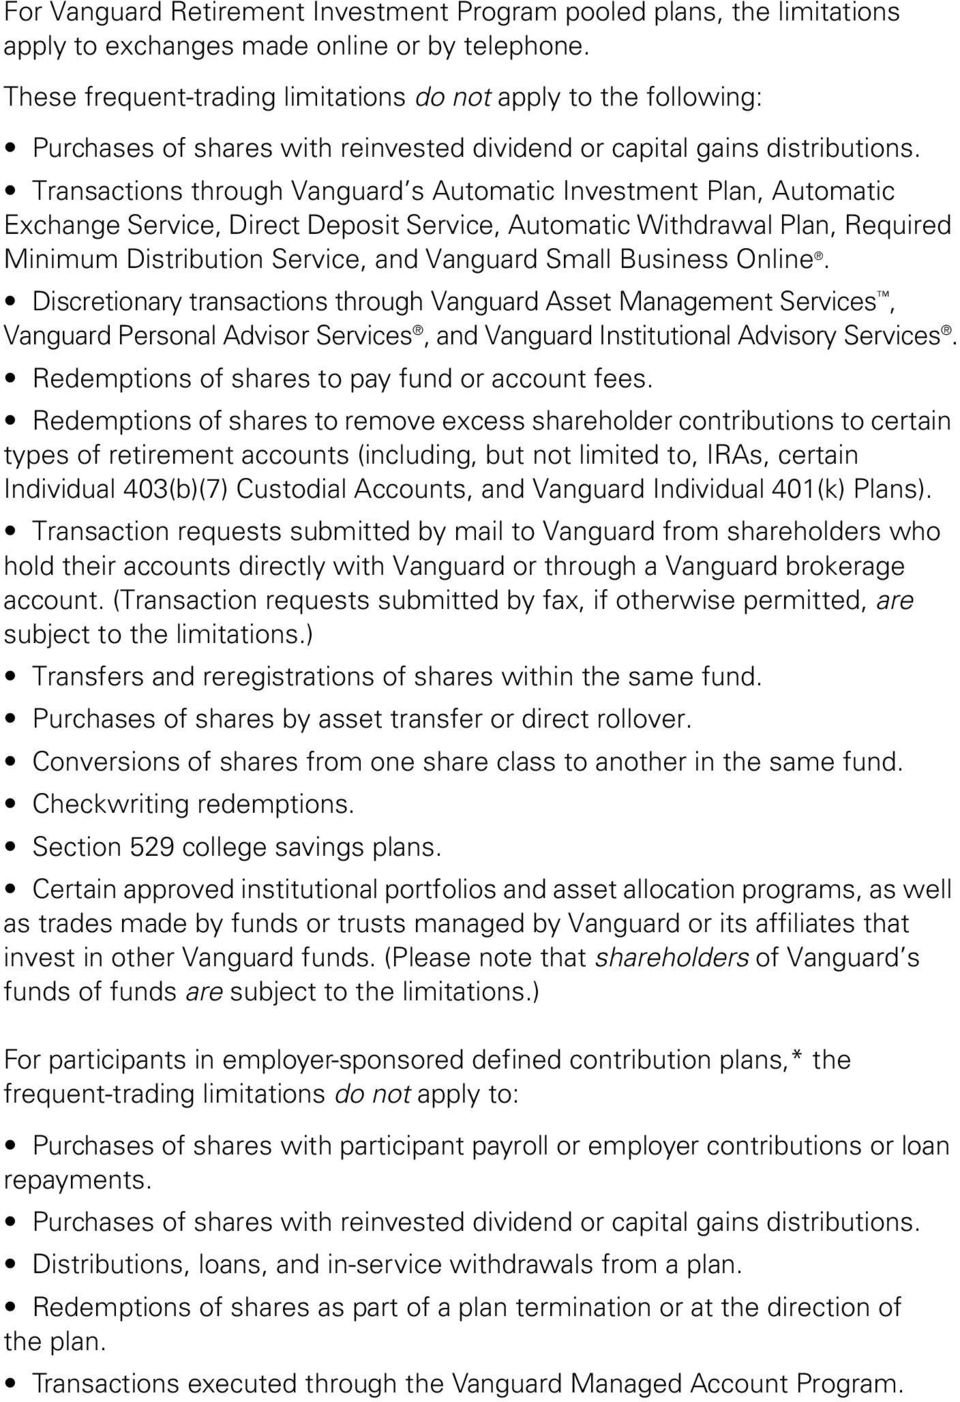 Transactions through Vanguard s Automatic Investment Plan, Automatic Exchange Service, Direct Deposit Service, Automatic Withdrawal Plan, Required Minimum Distribution Service, and Vanguard Small